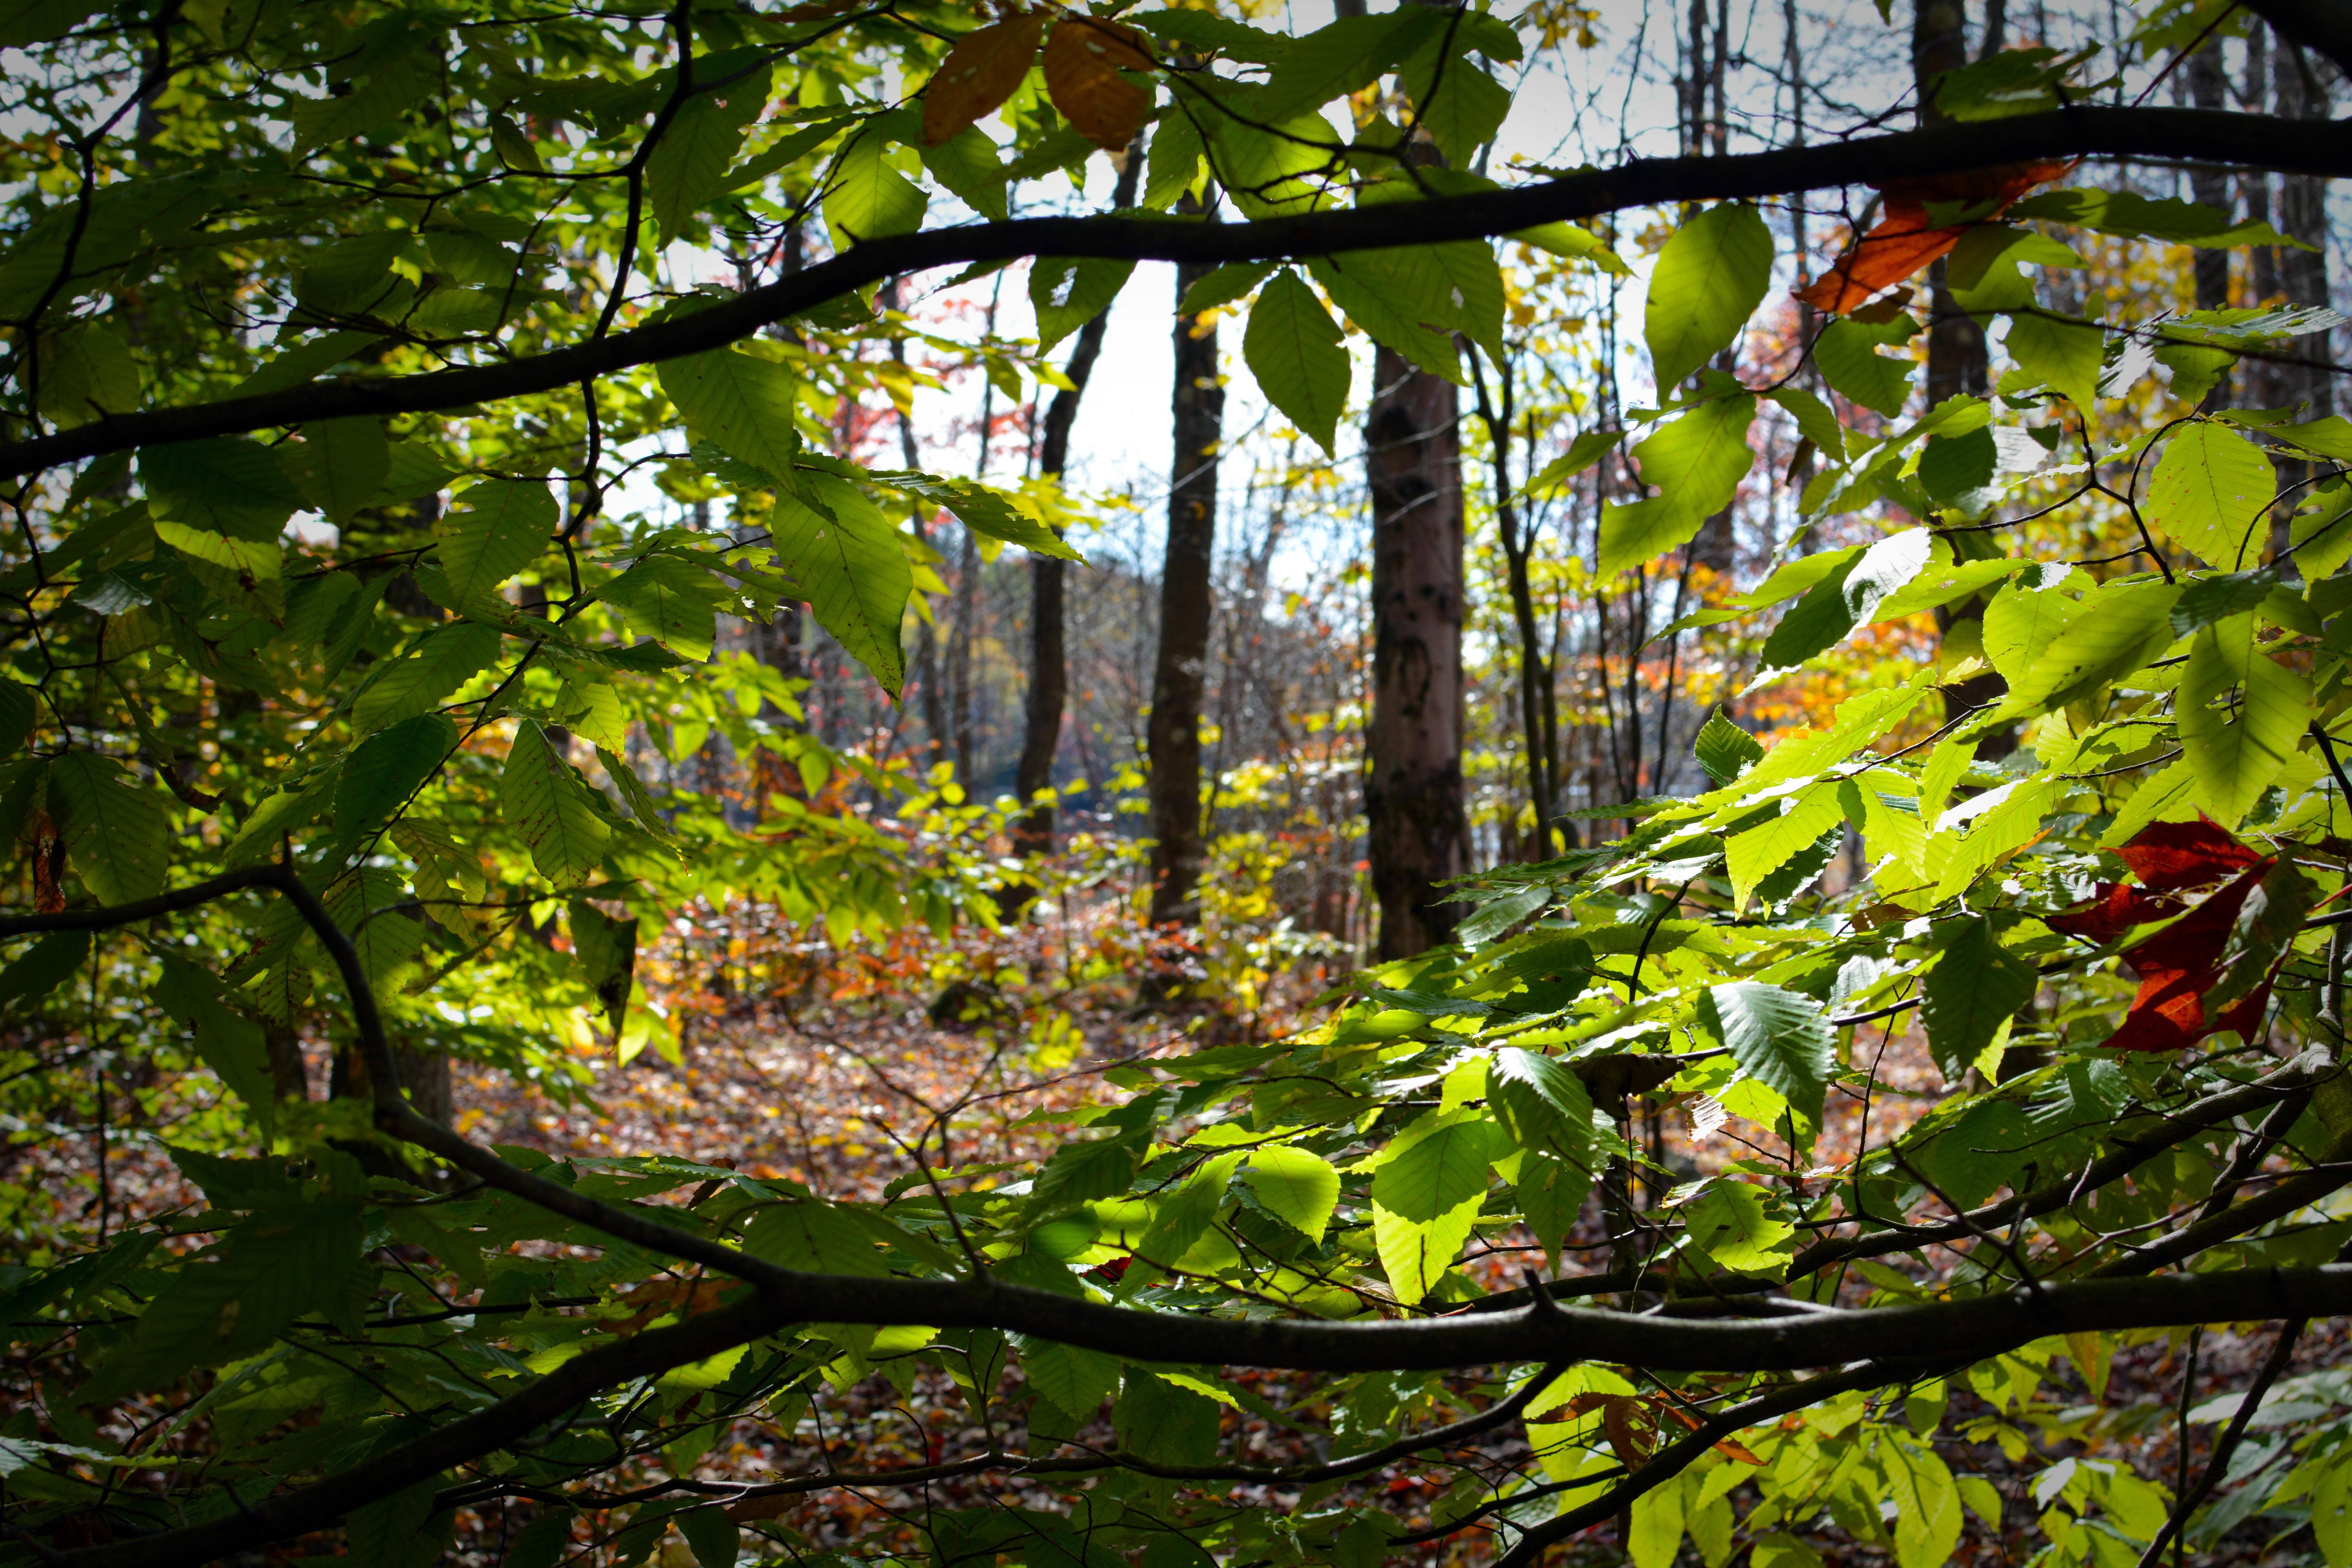 The forest at Tobyhanna State Park framed by trees in the fall